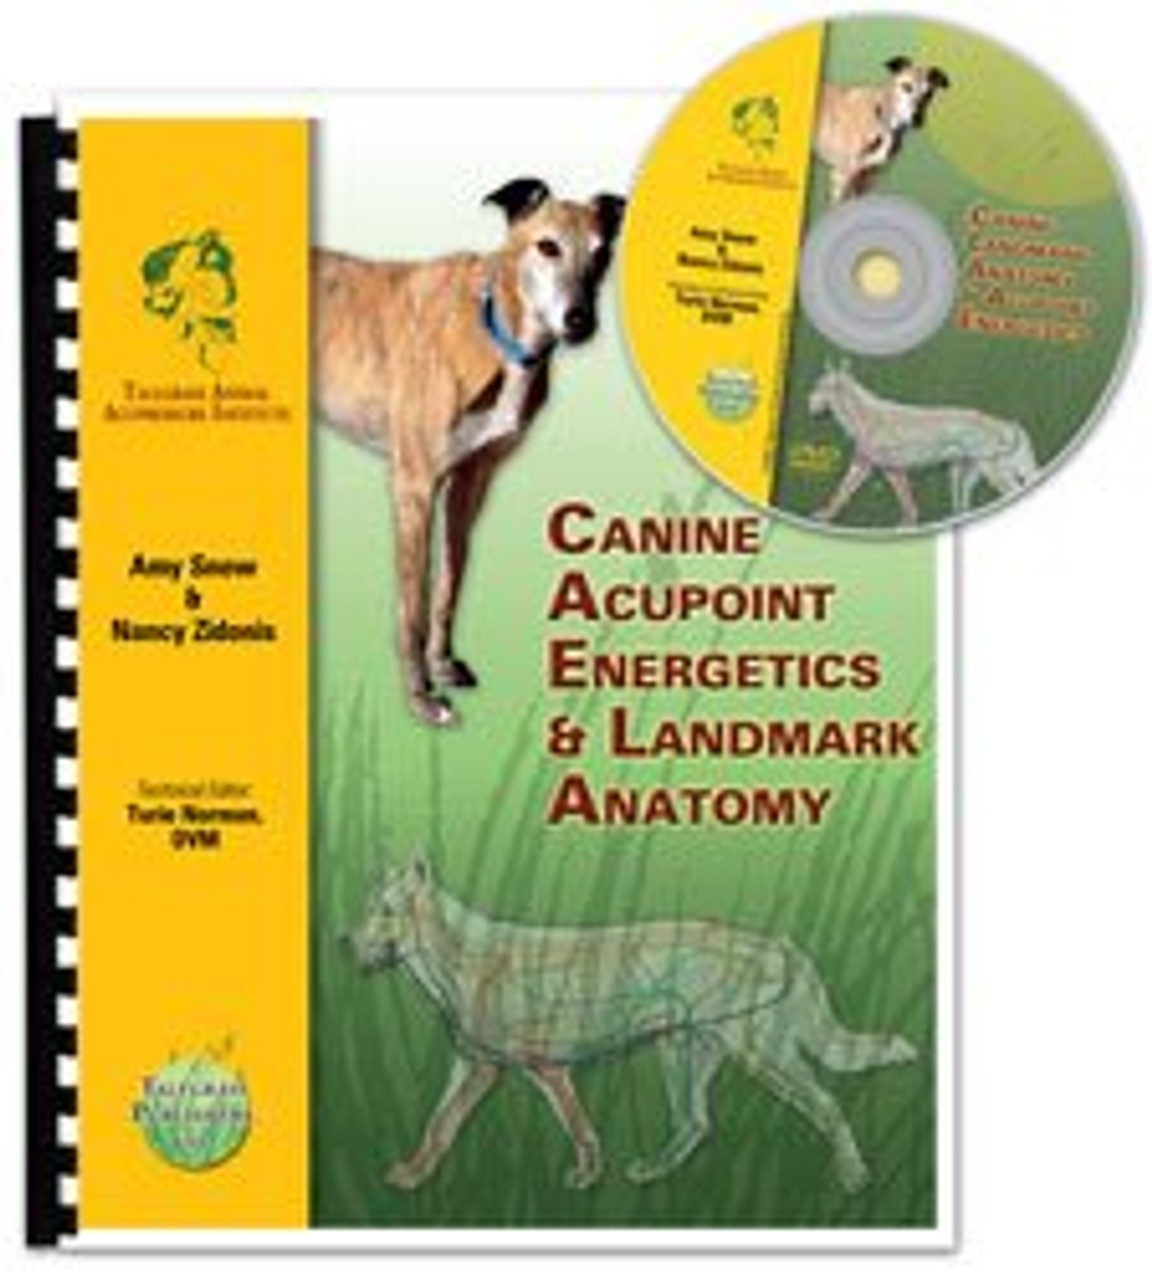 Canine Acupoint Energetics & Landmark Anatomy - DVD & Manual